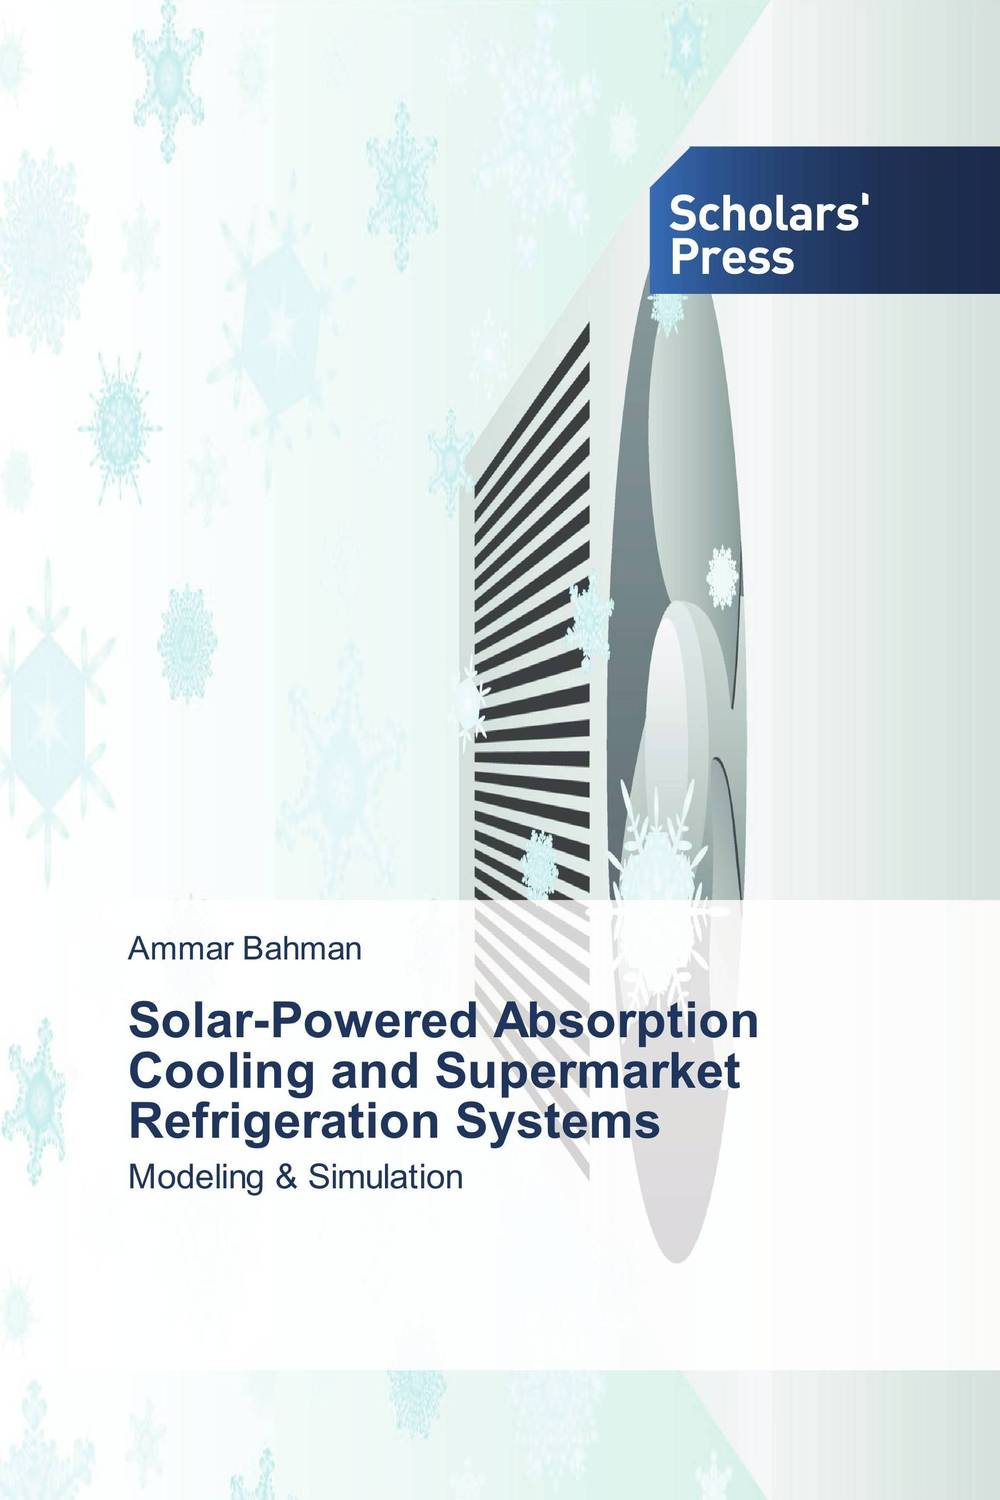 Solar-Powered Absorption Cooling and Supermarket Refrigeration Systems hzsecurity am mono system for anti shoplifting in the supermarket or garment stores 58khz